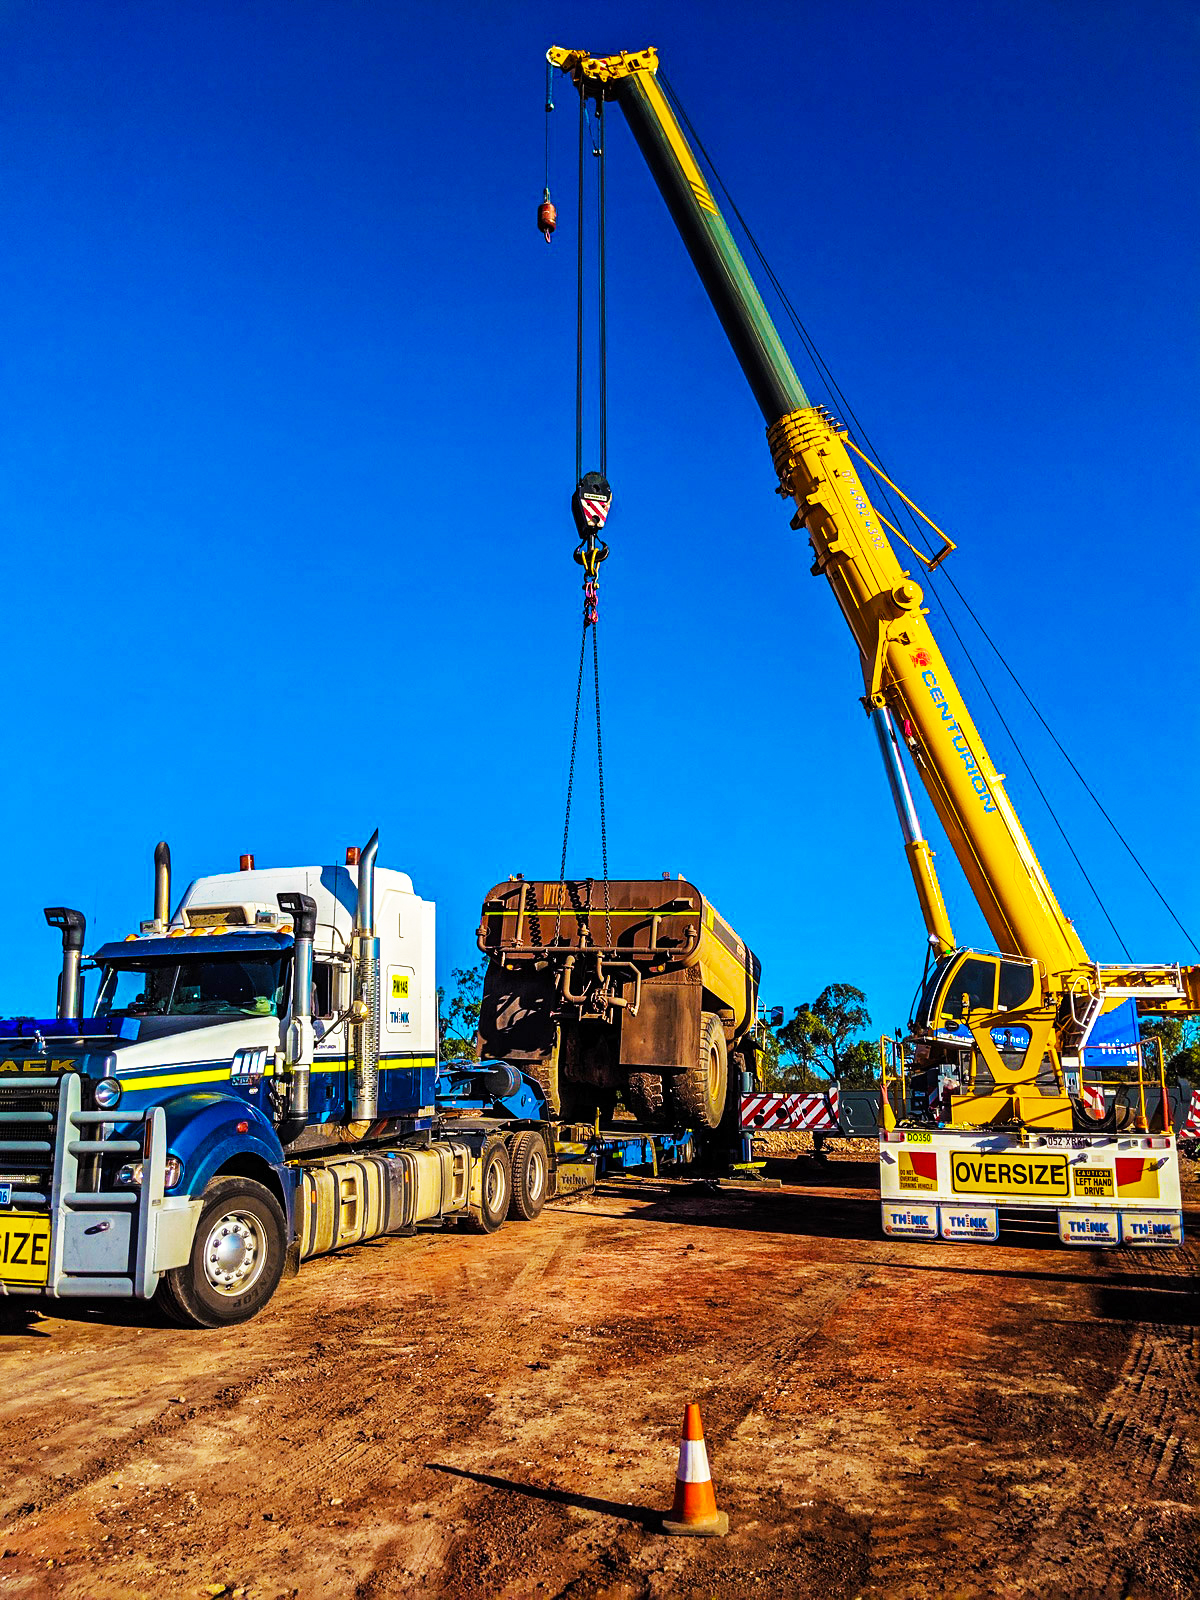 Centurion combines Crane Services and Heavy Haulage capabilities throughout Queensland